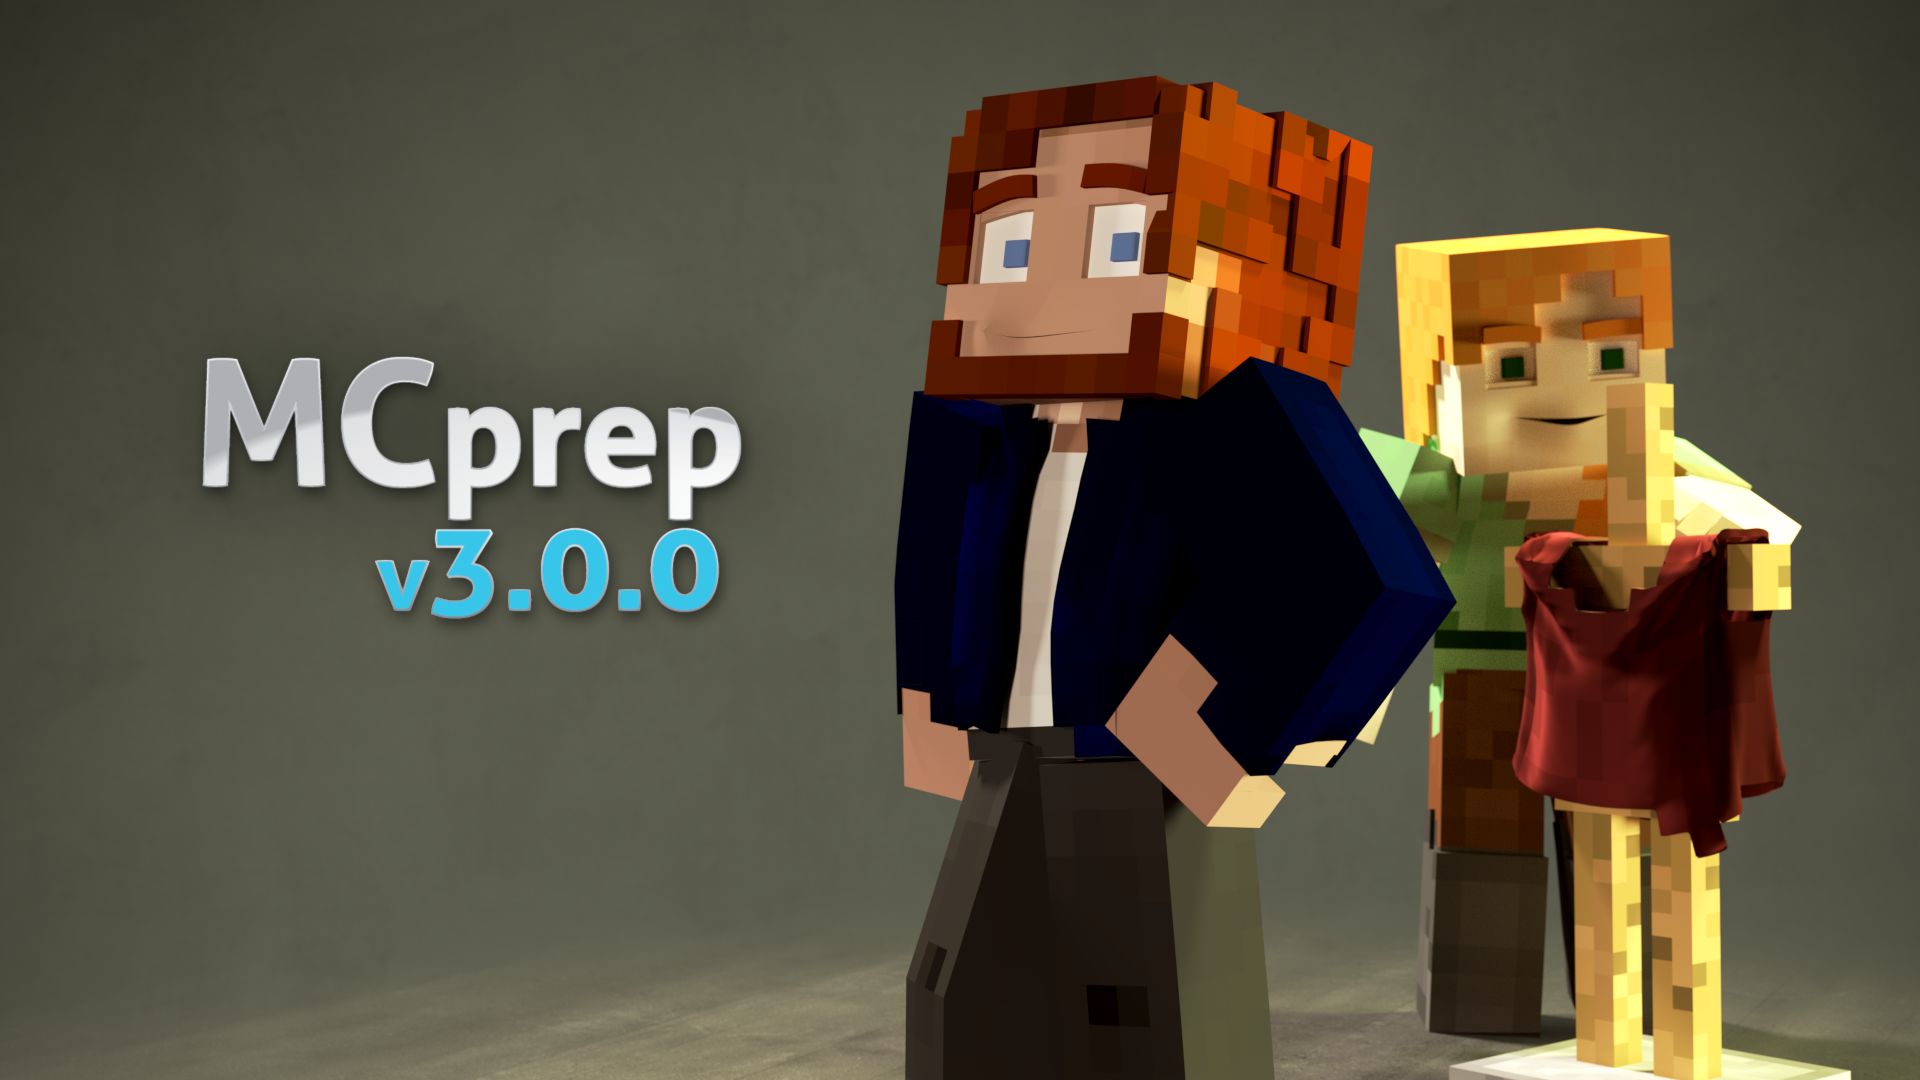 mcpre-banner-final-edit-releases